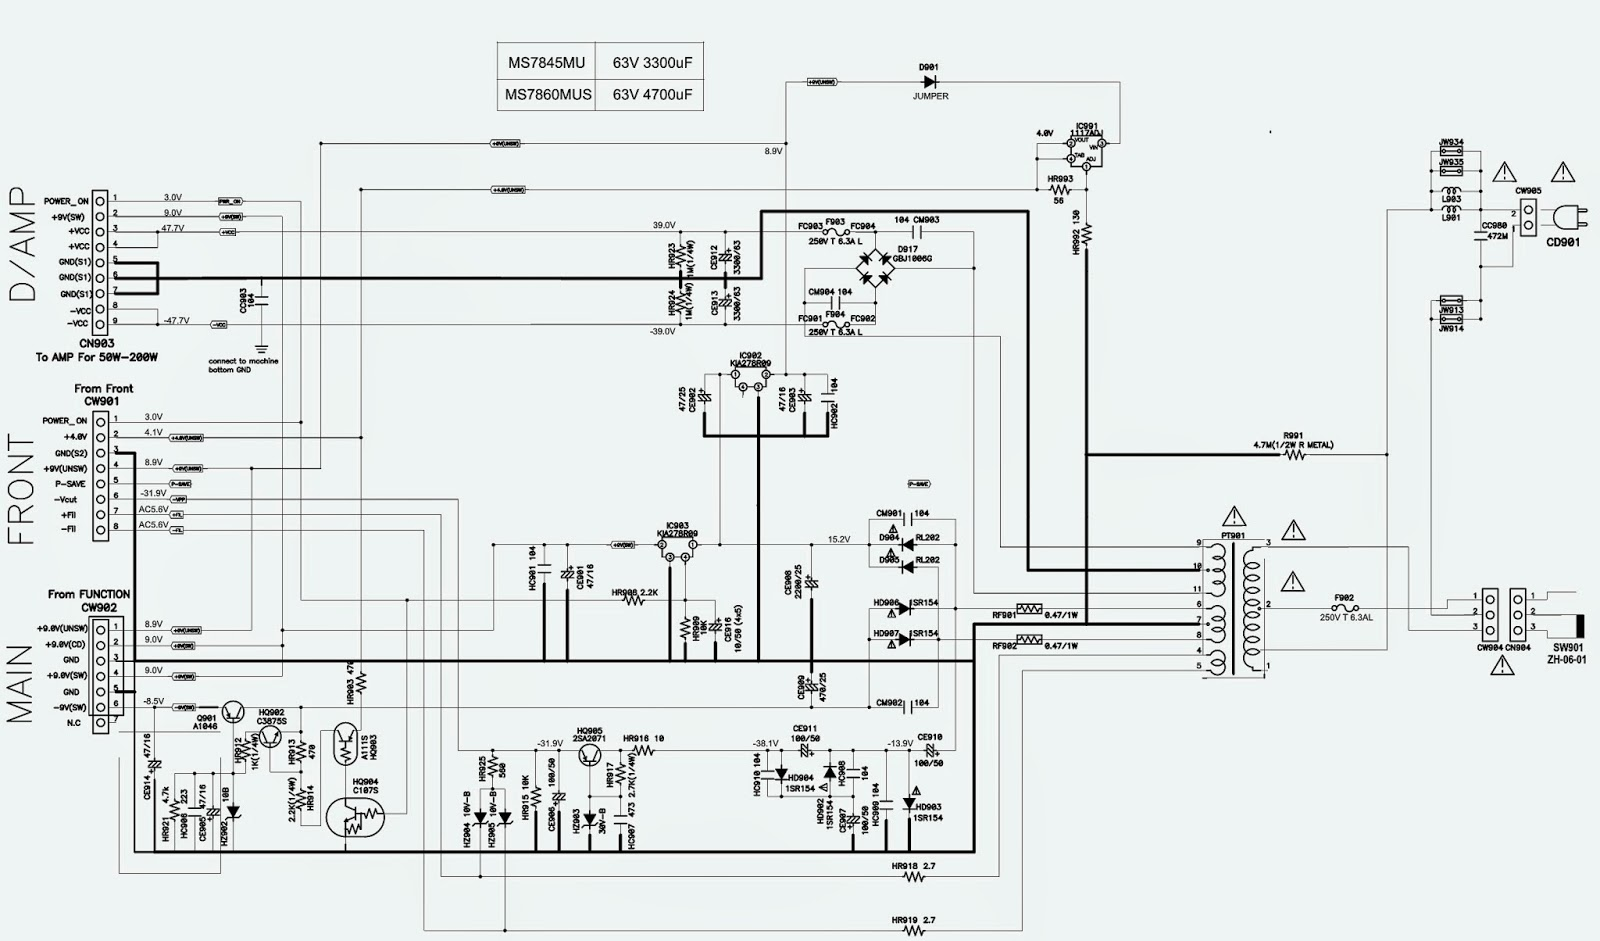 2.bmp toshiba ms 7845mu 60mus schematic wiring diagram schematic power toshiba motor wiring diagram at creativeand.co